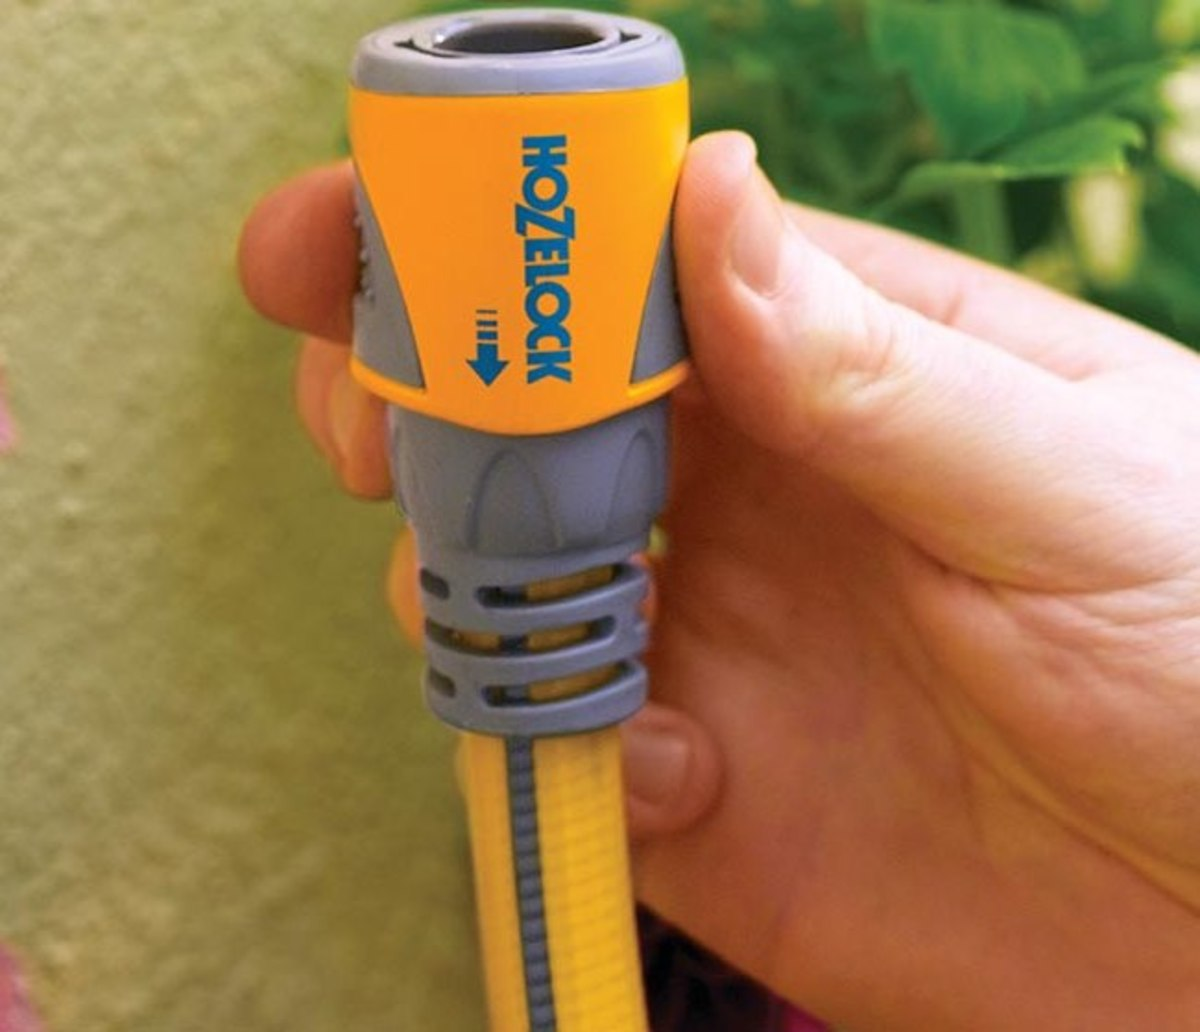 The hose end connector simply push fits on the connector on the tap.